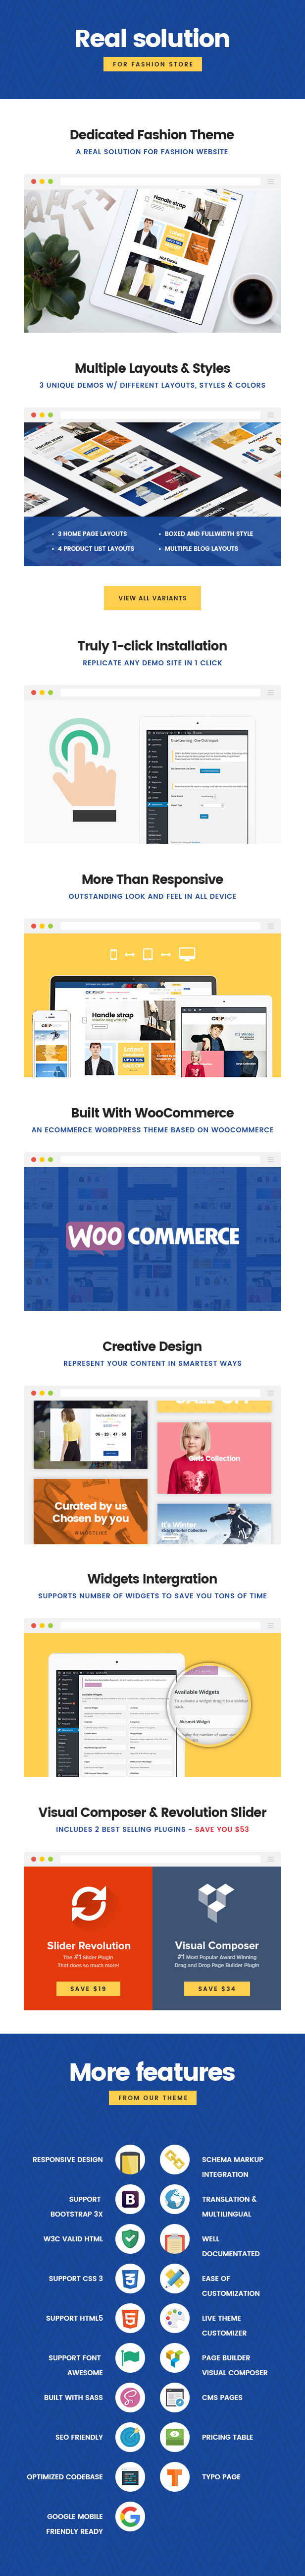 Woocommerce wordpress theme for fashion